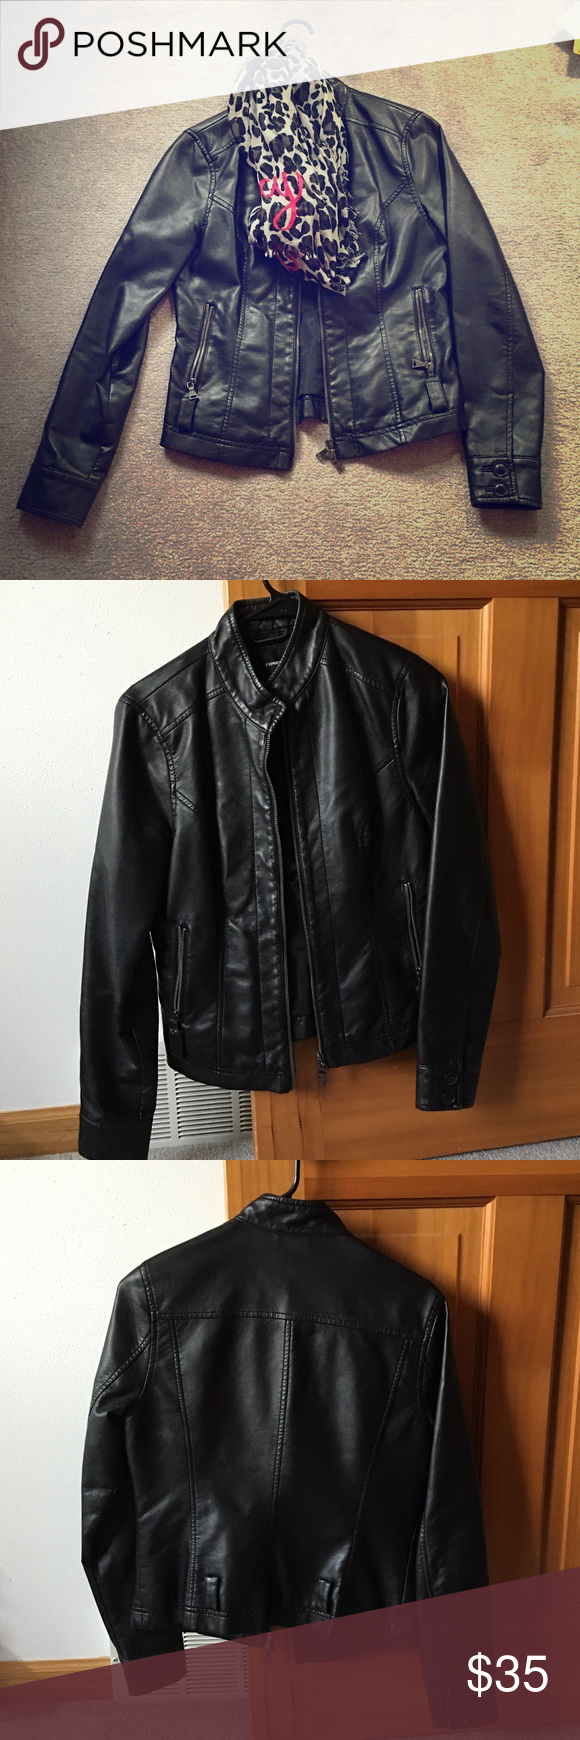 Express Moto Jacket. Best offer. I'm seriously sad about selling this one, but I will NEVER be a size small ever again. I've been trying just so I can fit back into this jacket!  I originally paid $124 for it at Express. Offers are welcome. This jacket still has so much life left. Gently loved. Express Jackets & Coats